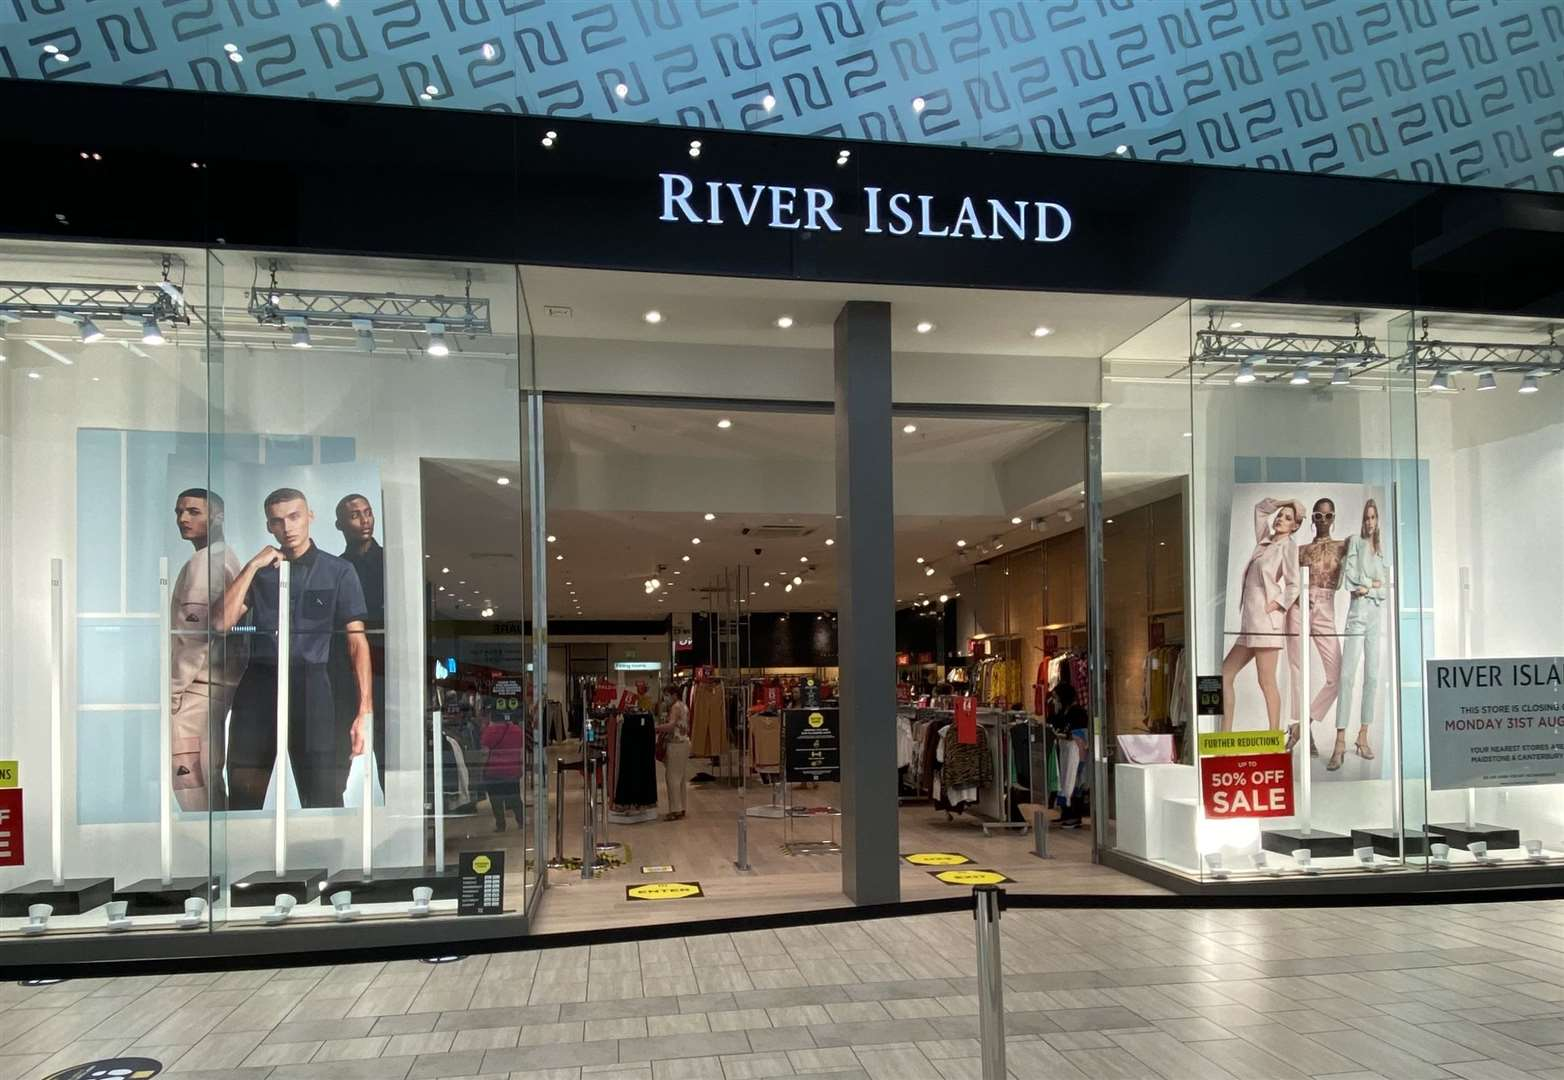 Jobcentre to open in former River Island store